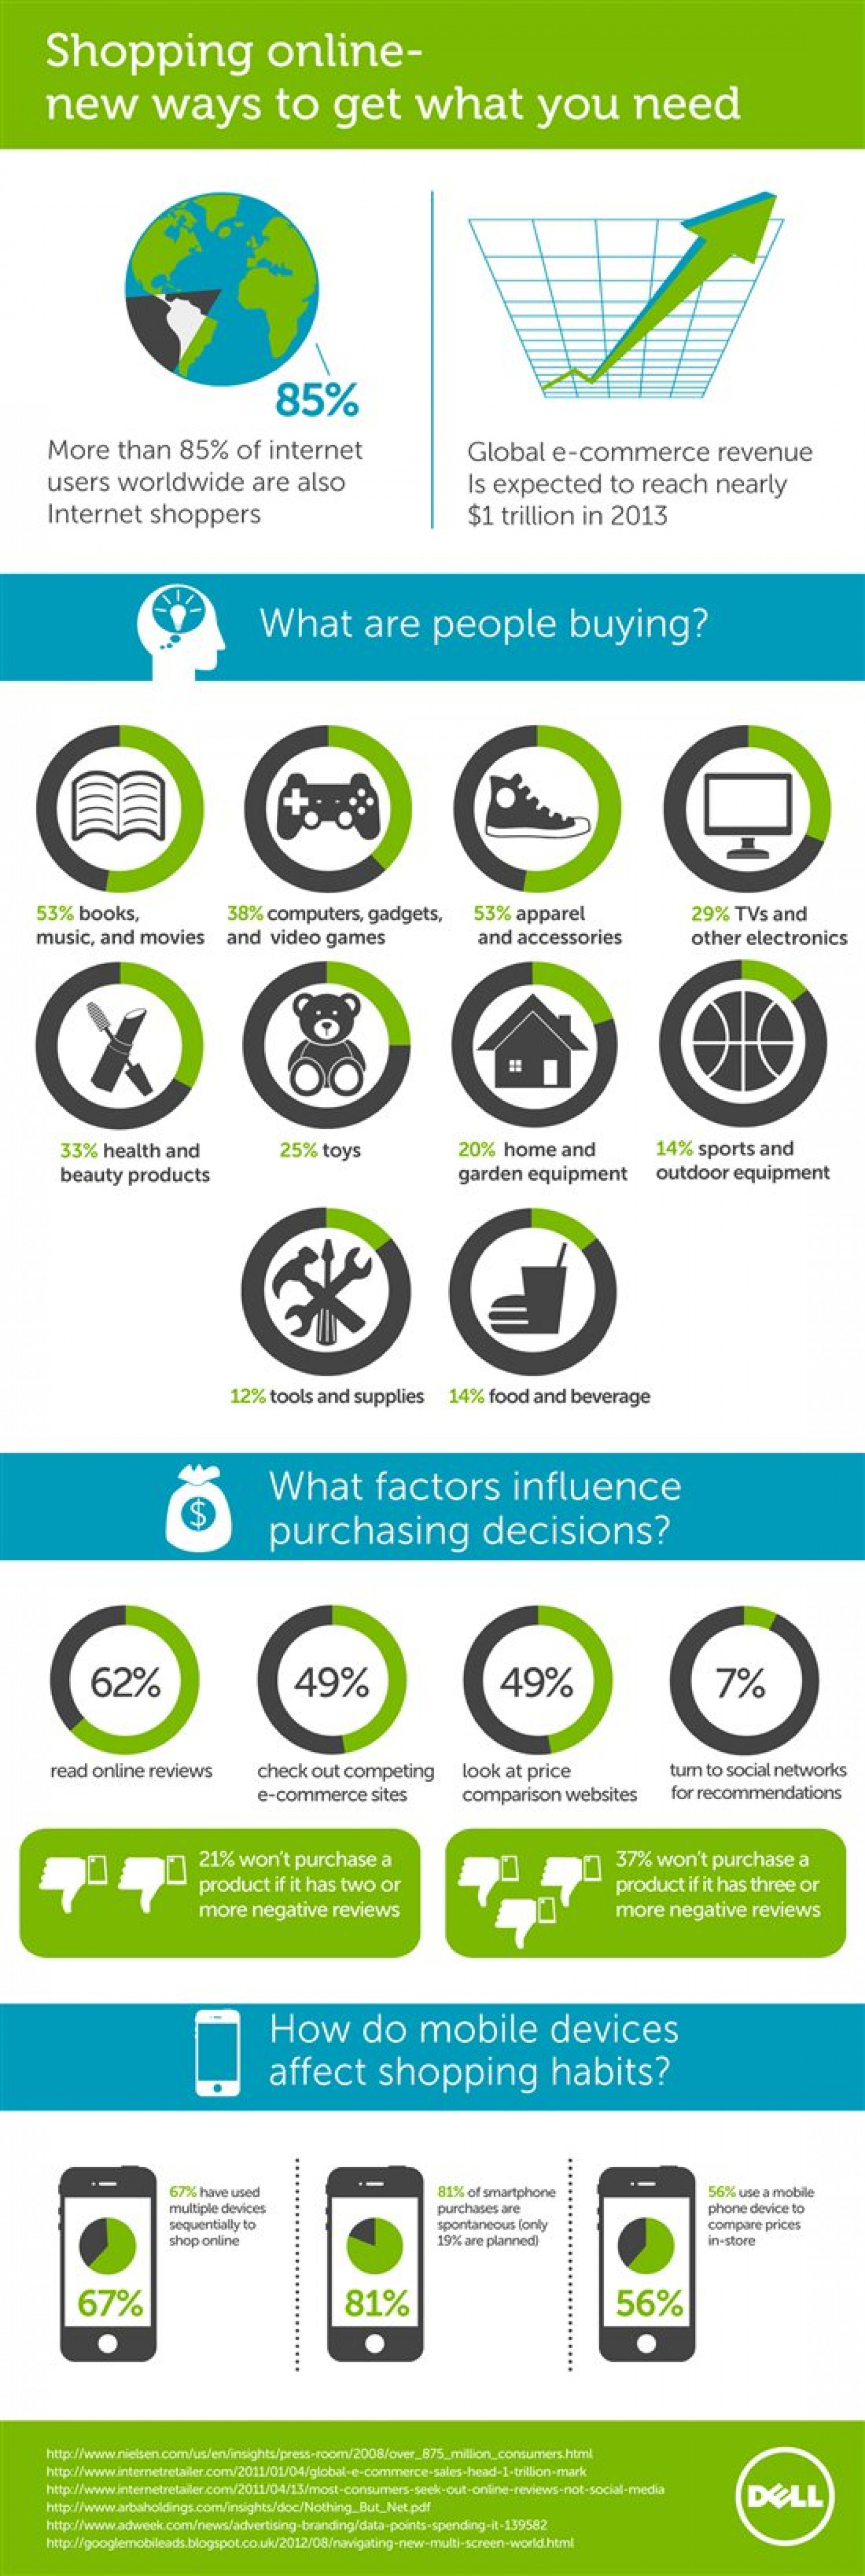 Shopping Online: New Ways to Get What You Need Infographic